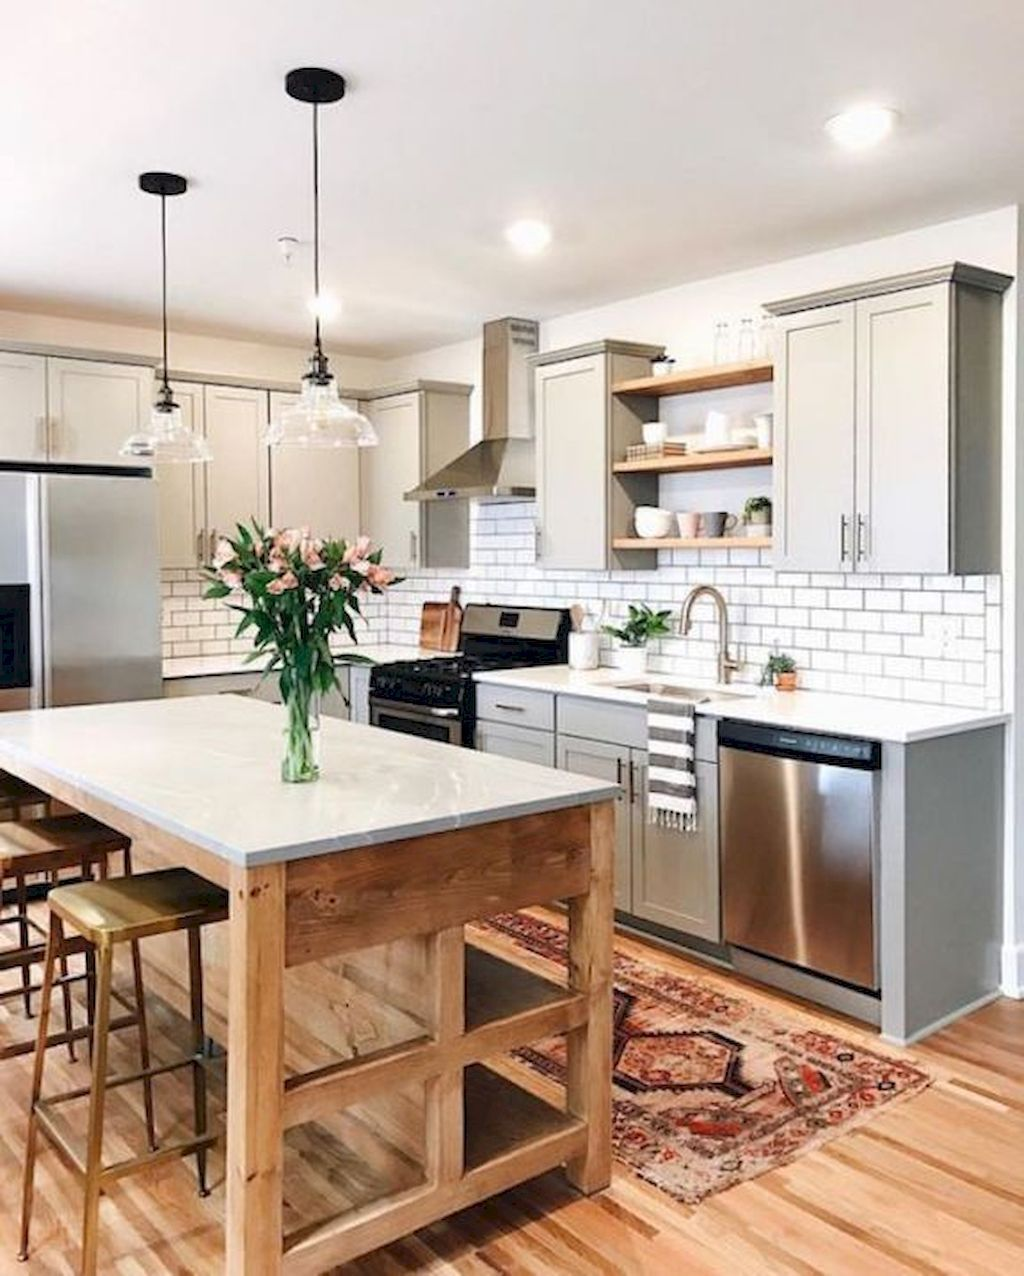 Fitted Kitchen Interior Designs Ideas Kitchen Cabinet: Awesome Rustic Farmhouse Kitchen Cabinets Décor Ideas Of